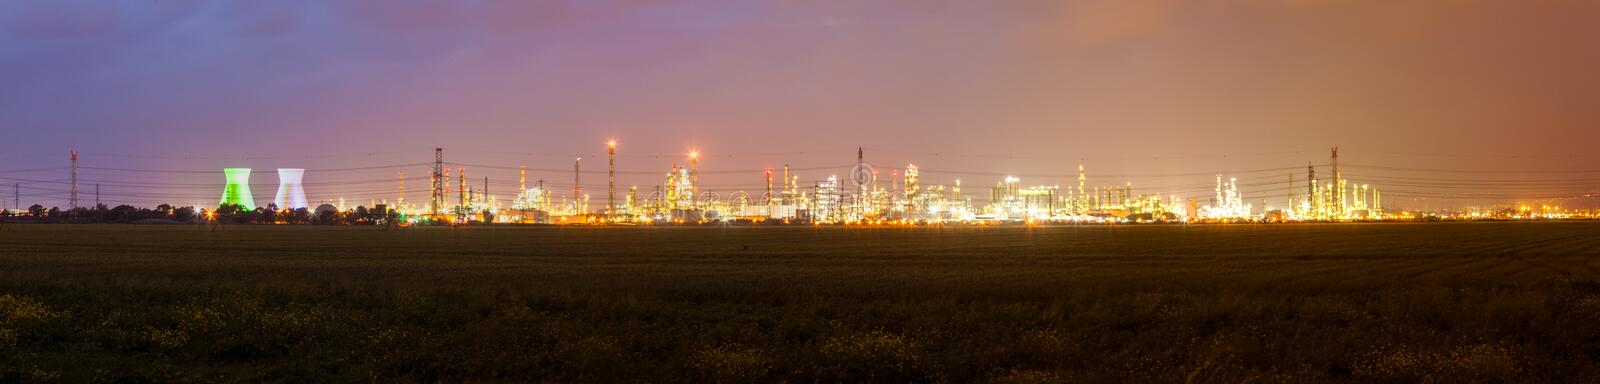 Urban landscape with lights of industrial zone and electric tow royalty free stock photography